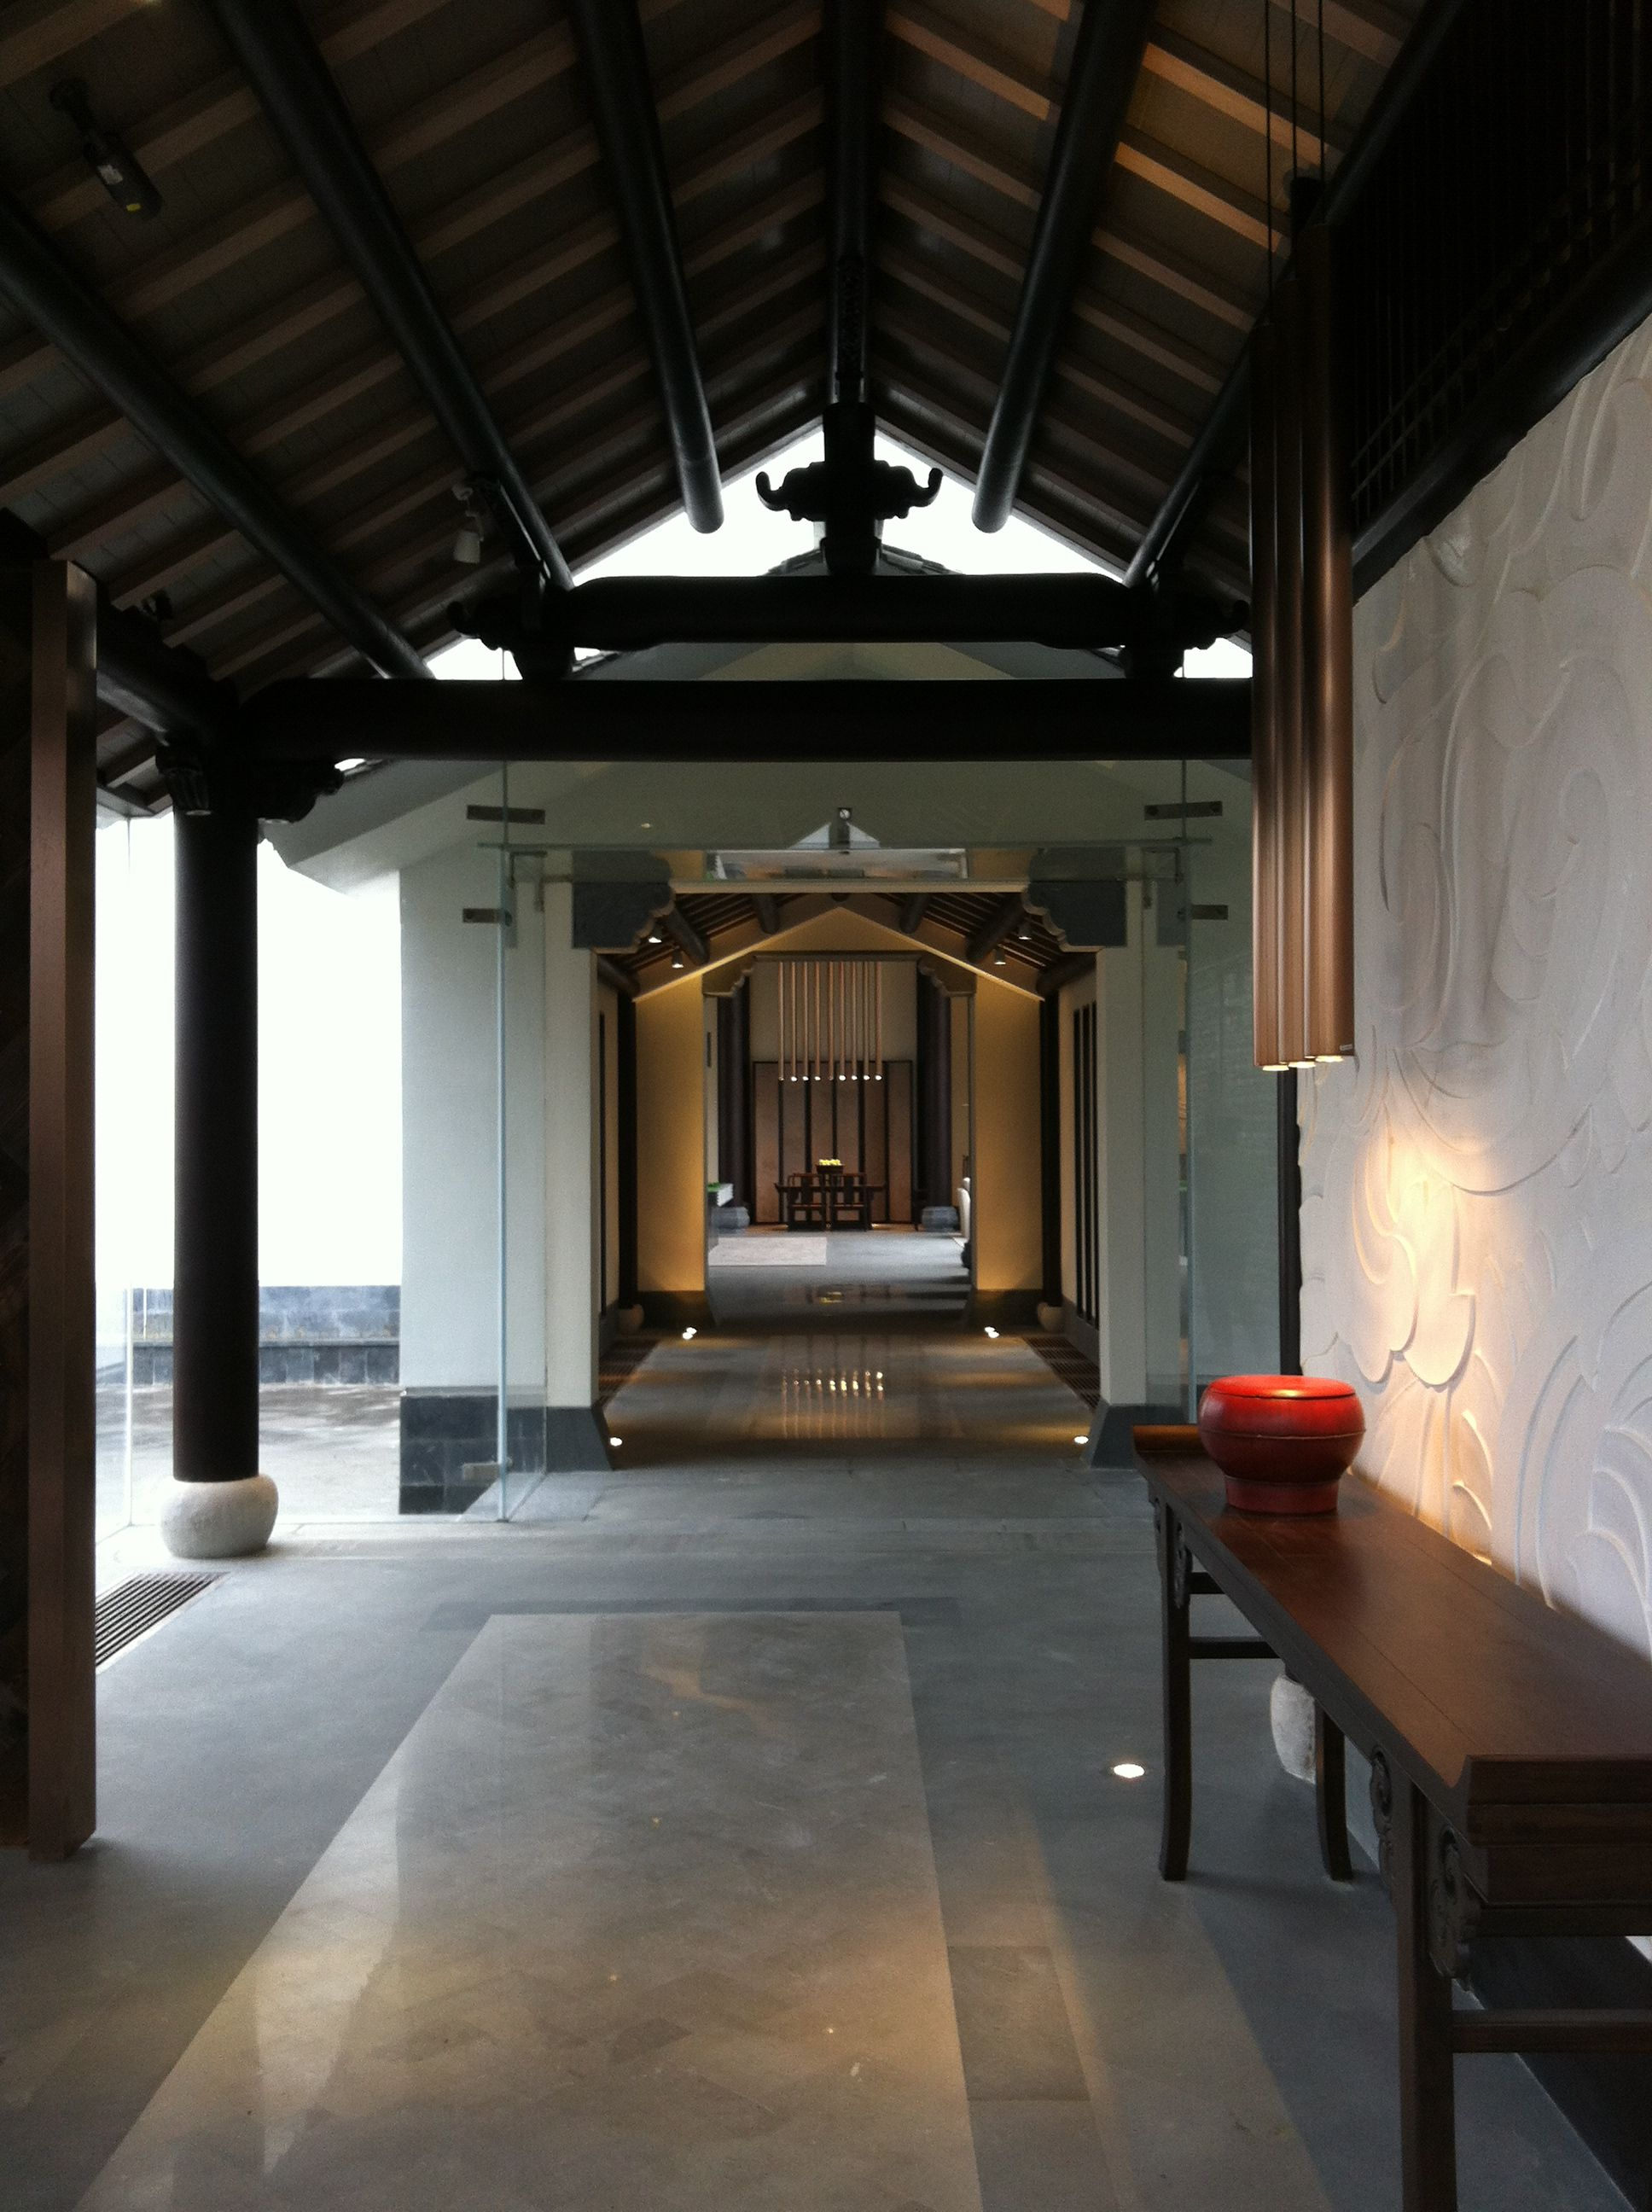 Banyan Tree Resort Residence In Huangshan China Asian Interior DesignAsian DesignChinese InteriorTropical ArchitectureOriental